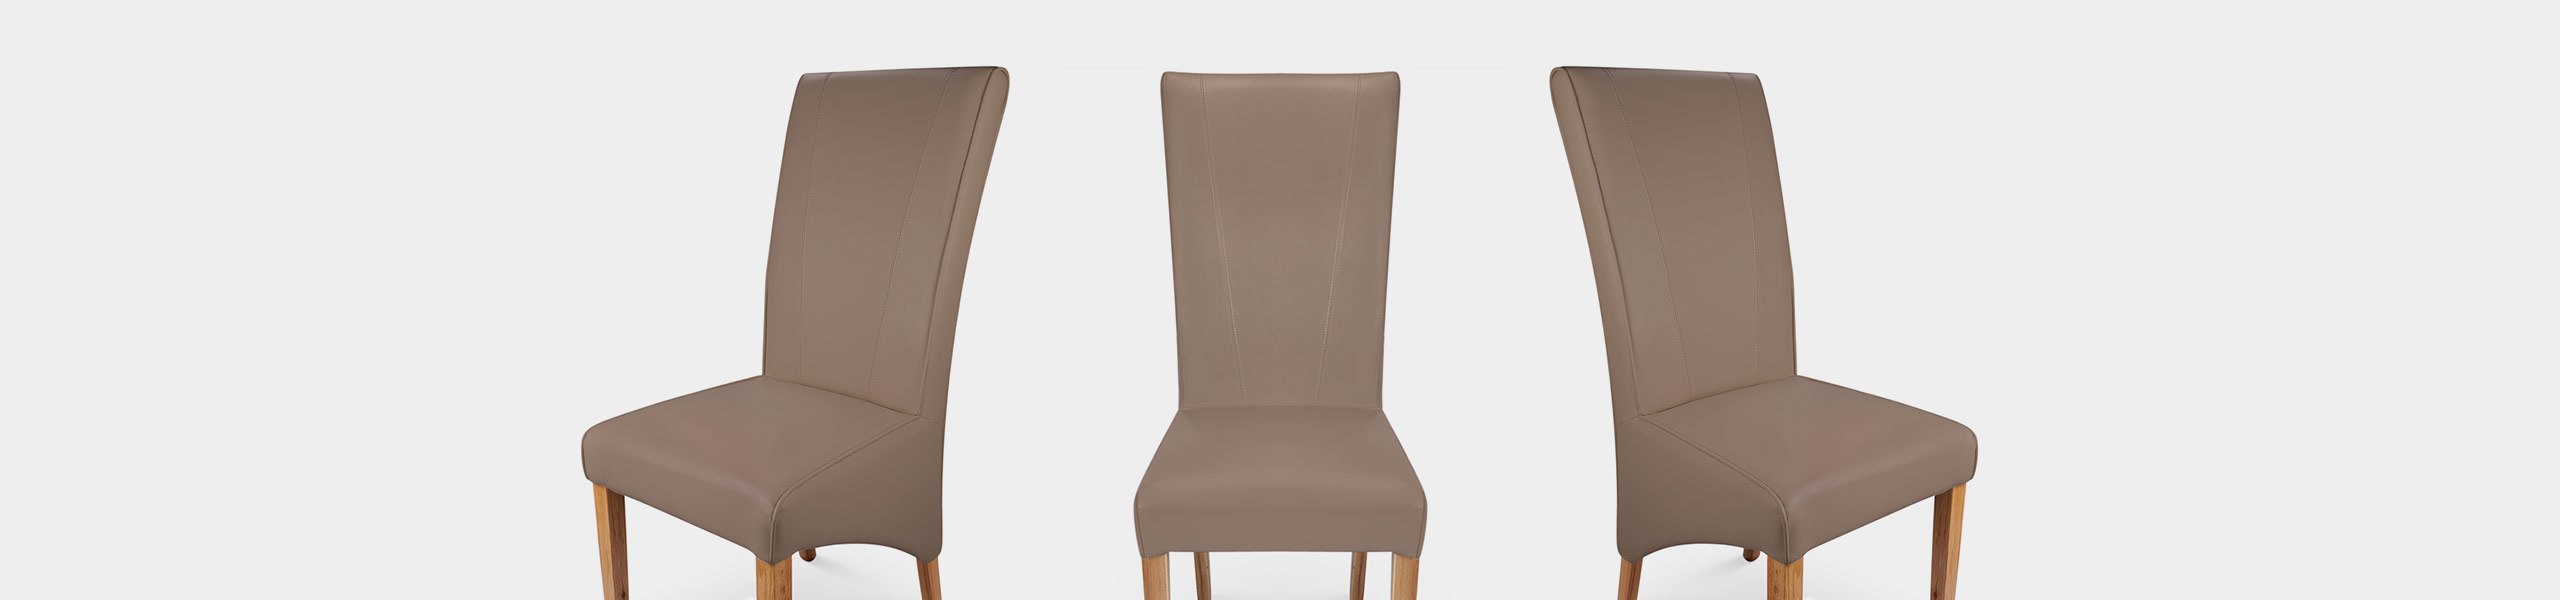 Marseille Madras Leather Dining Chair Taupe Video Banner